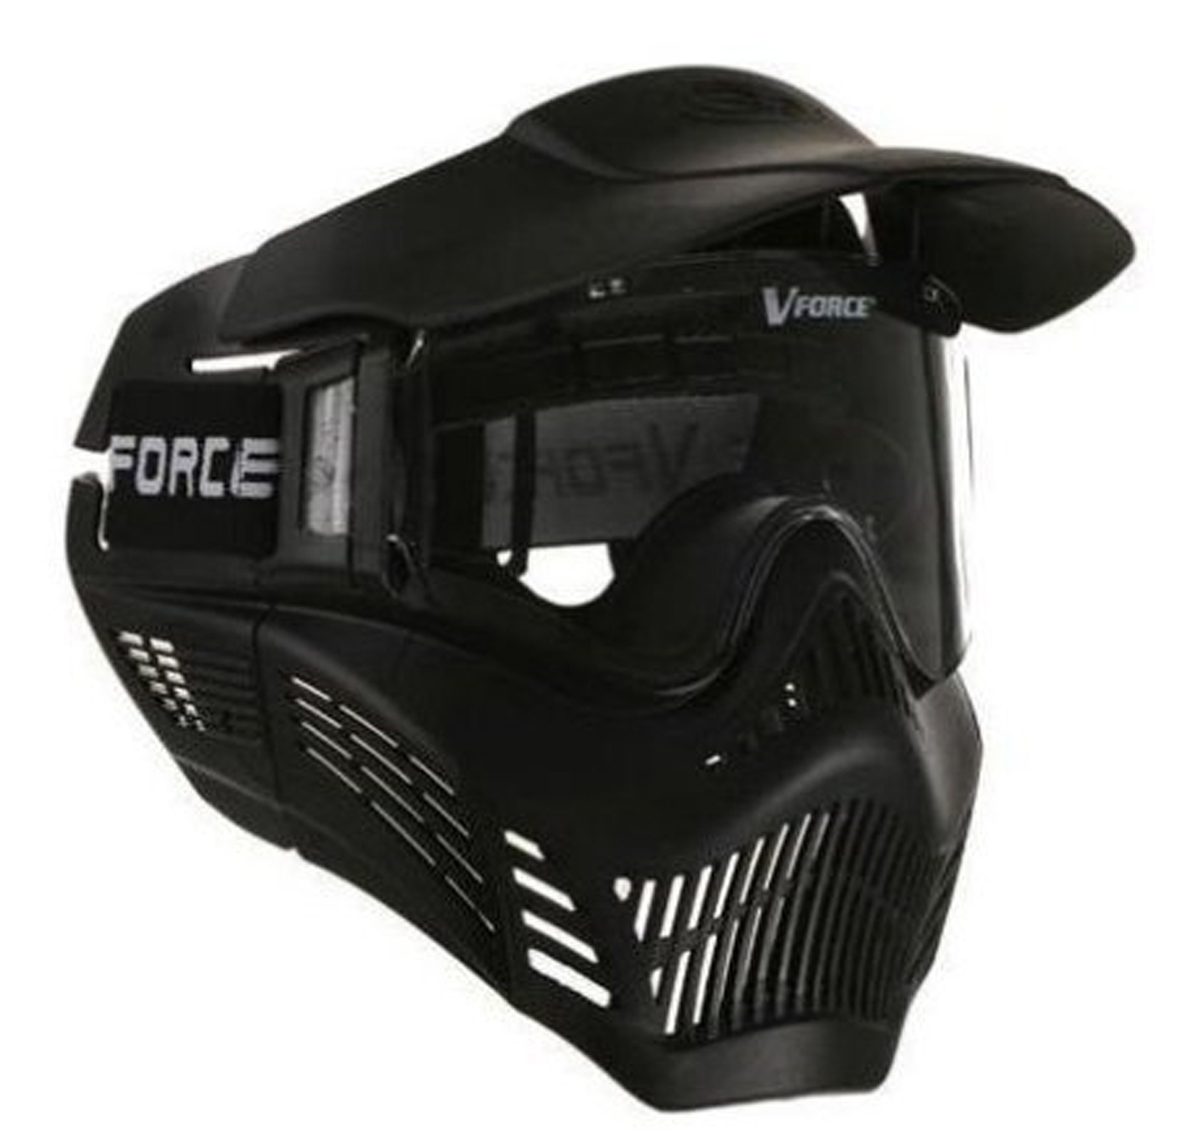 VForce Armor Field Paintball Goggle Mask - Black